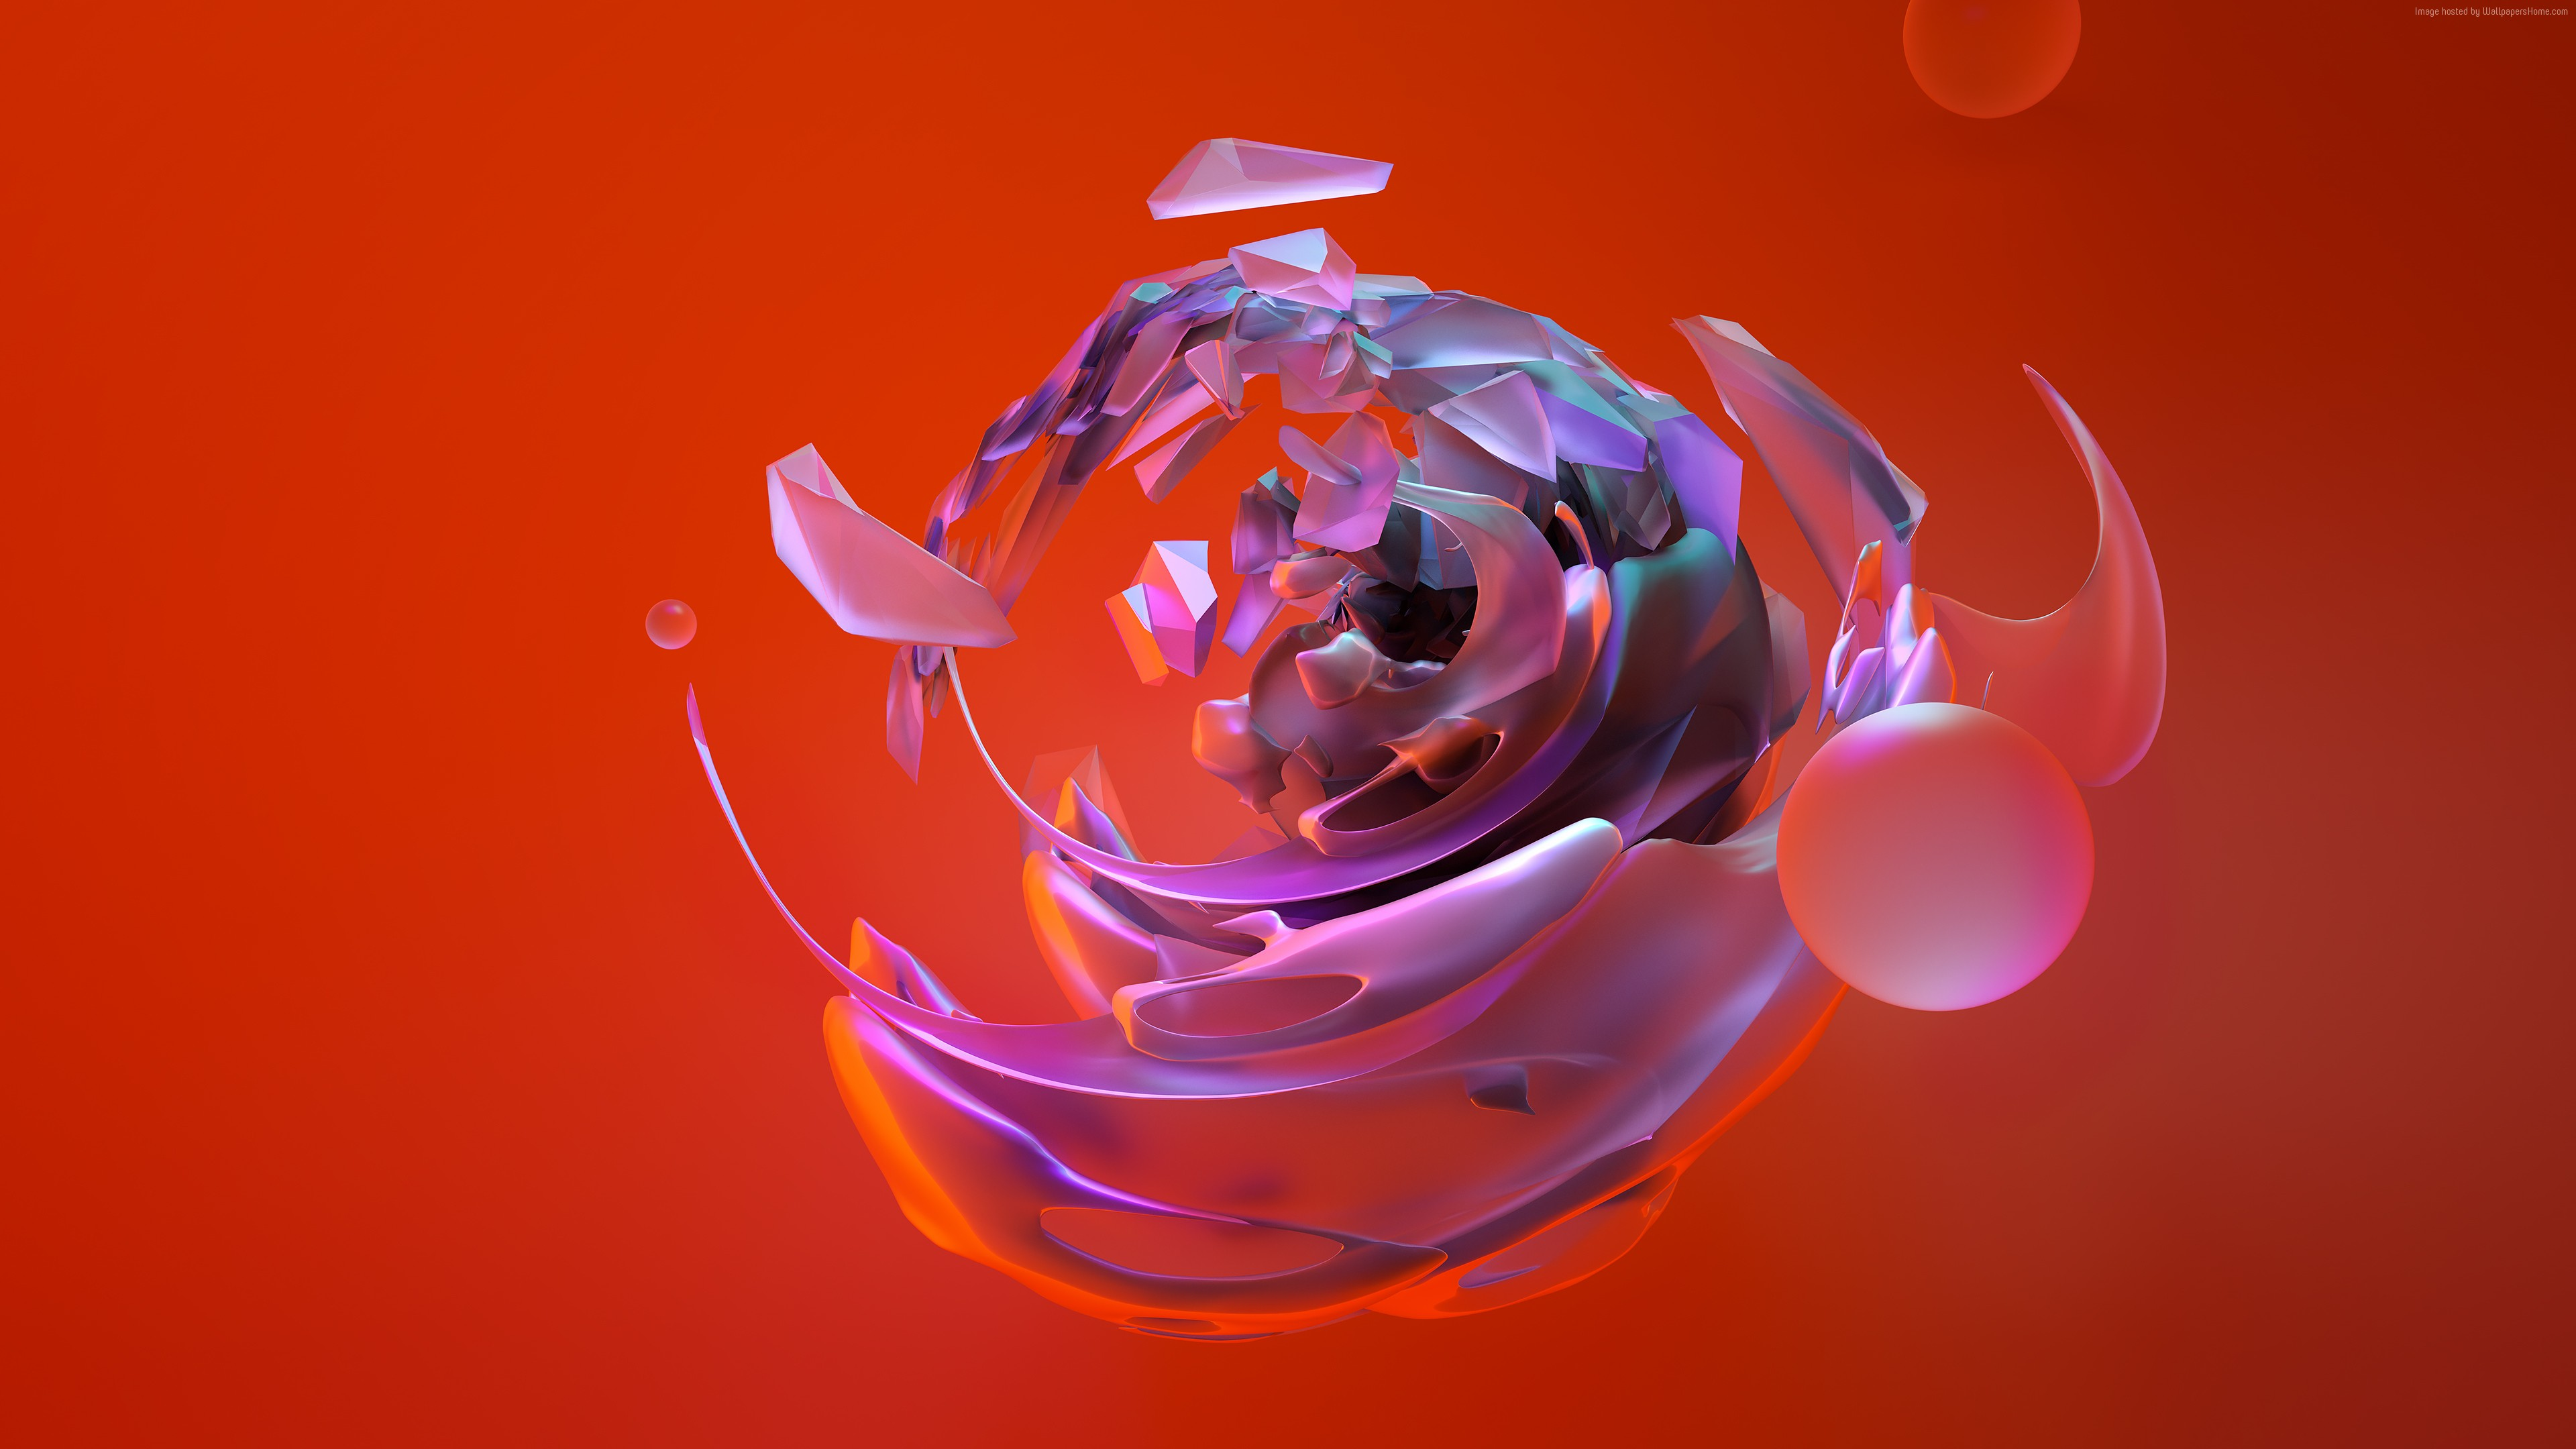 Wallpaper 3d Sphere Abstract Shapes 4k Abstract